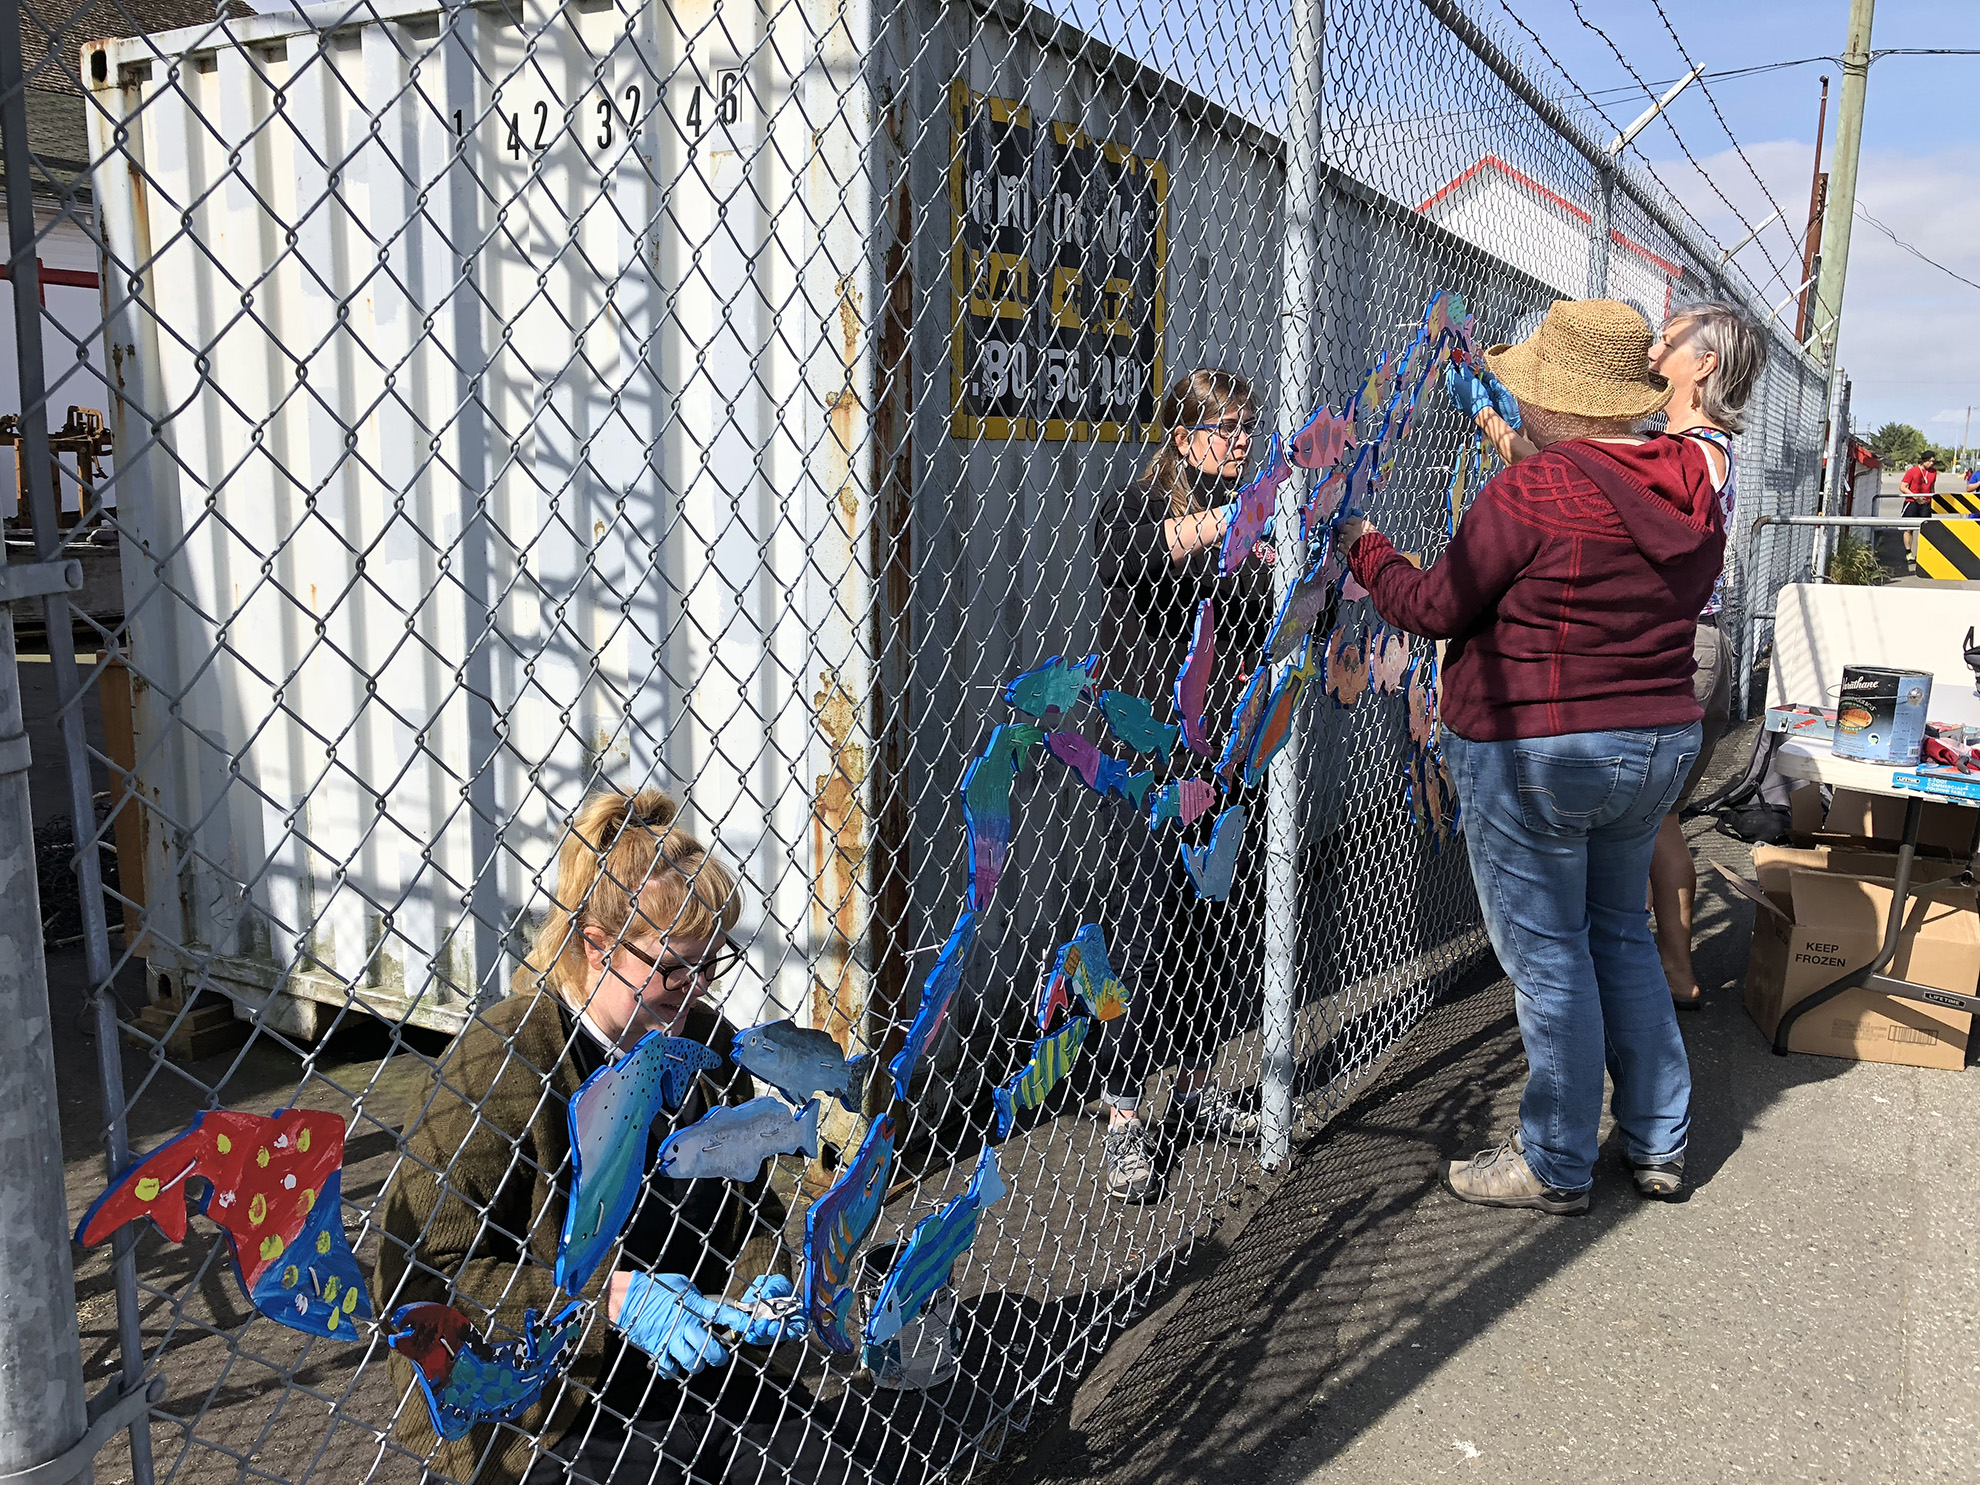 Stream of Dreams volunteers hanging up decorative fish art on fence